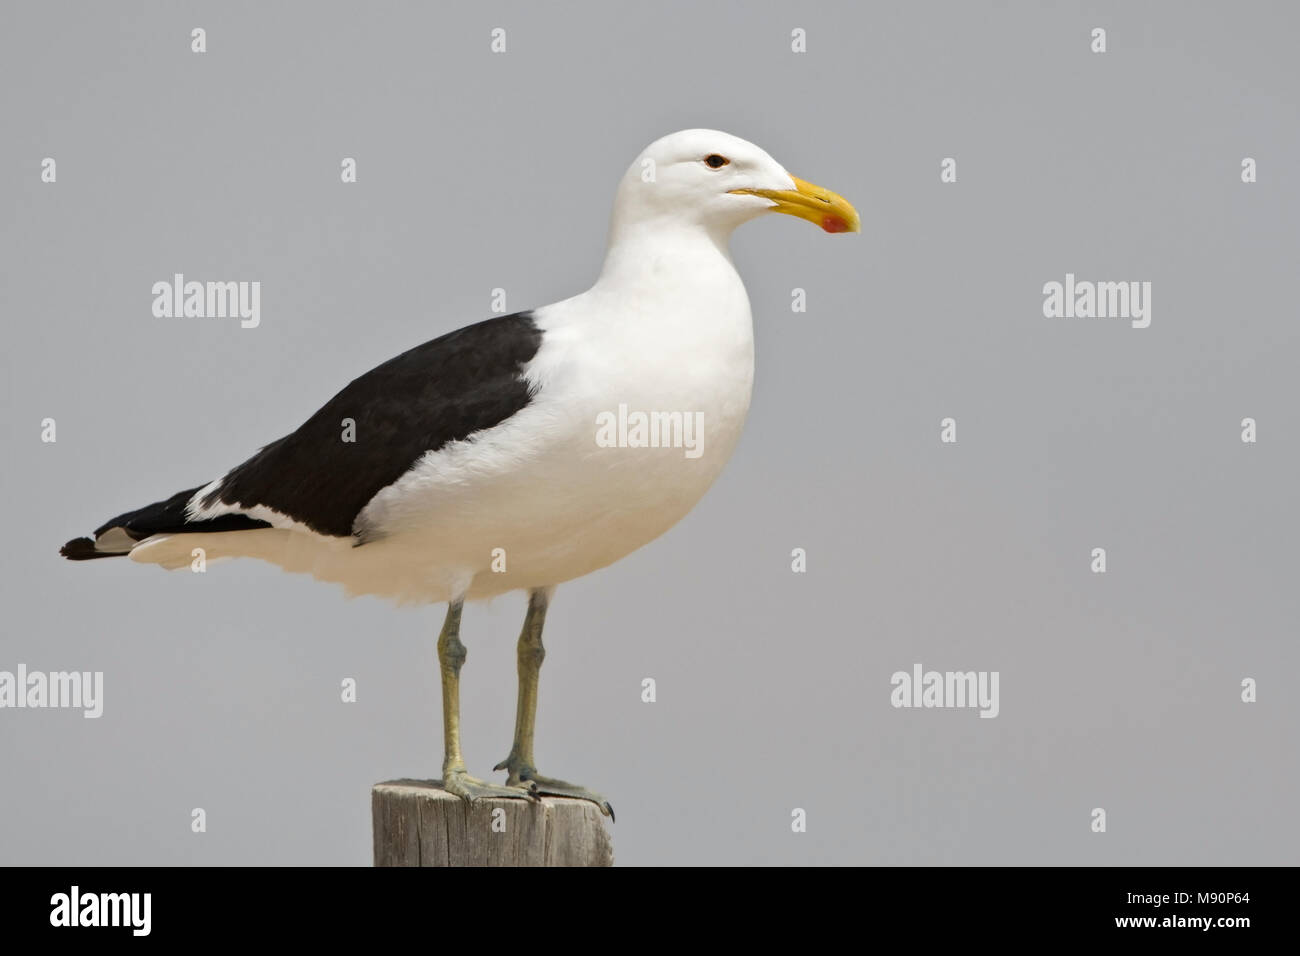 Kelpmeeuw staand op paal langs de kust Namibie, Kelp Gull perched at pole along coast Namibia - Stock Image